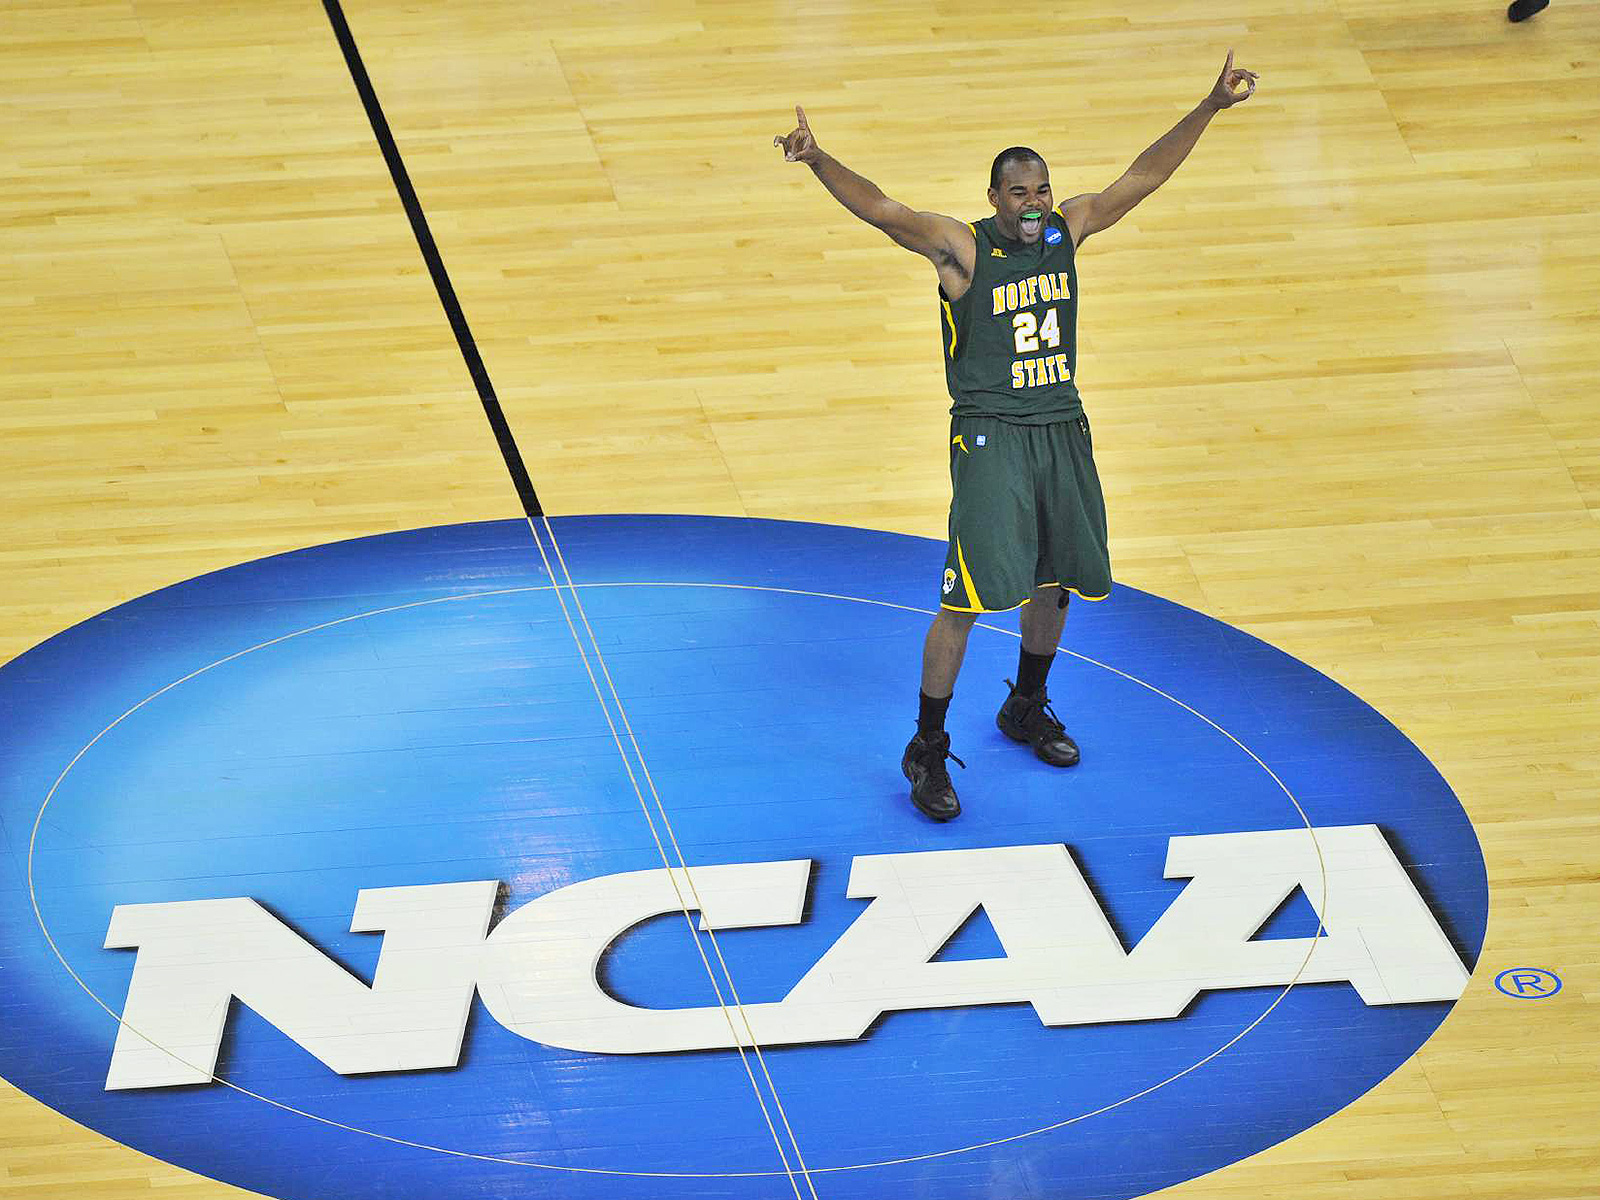 Norfolk State Brandon Wheeless